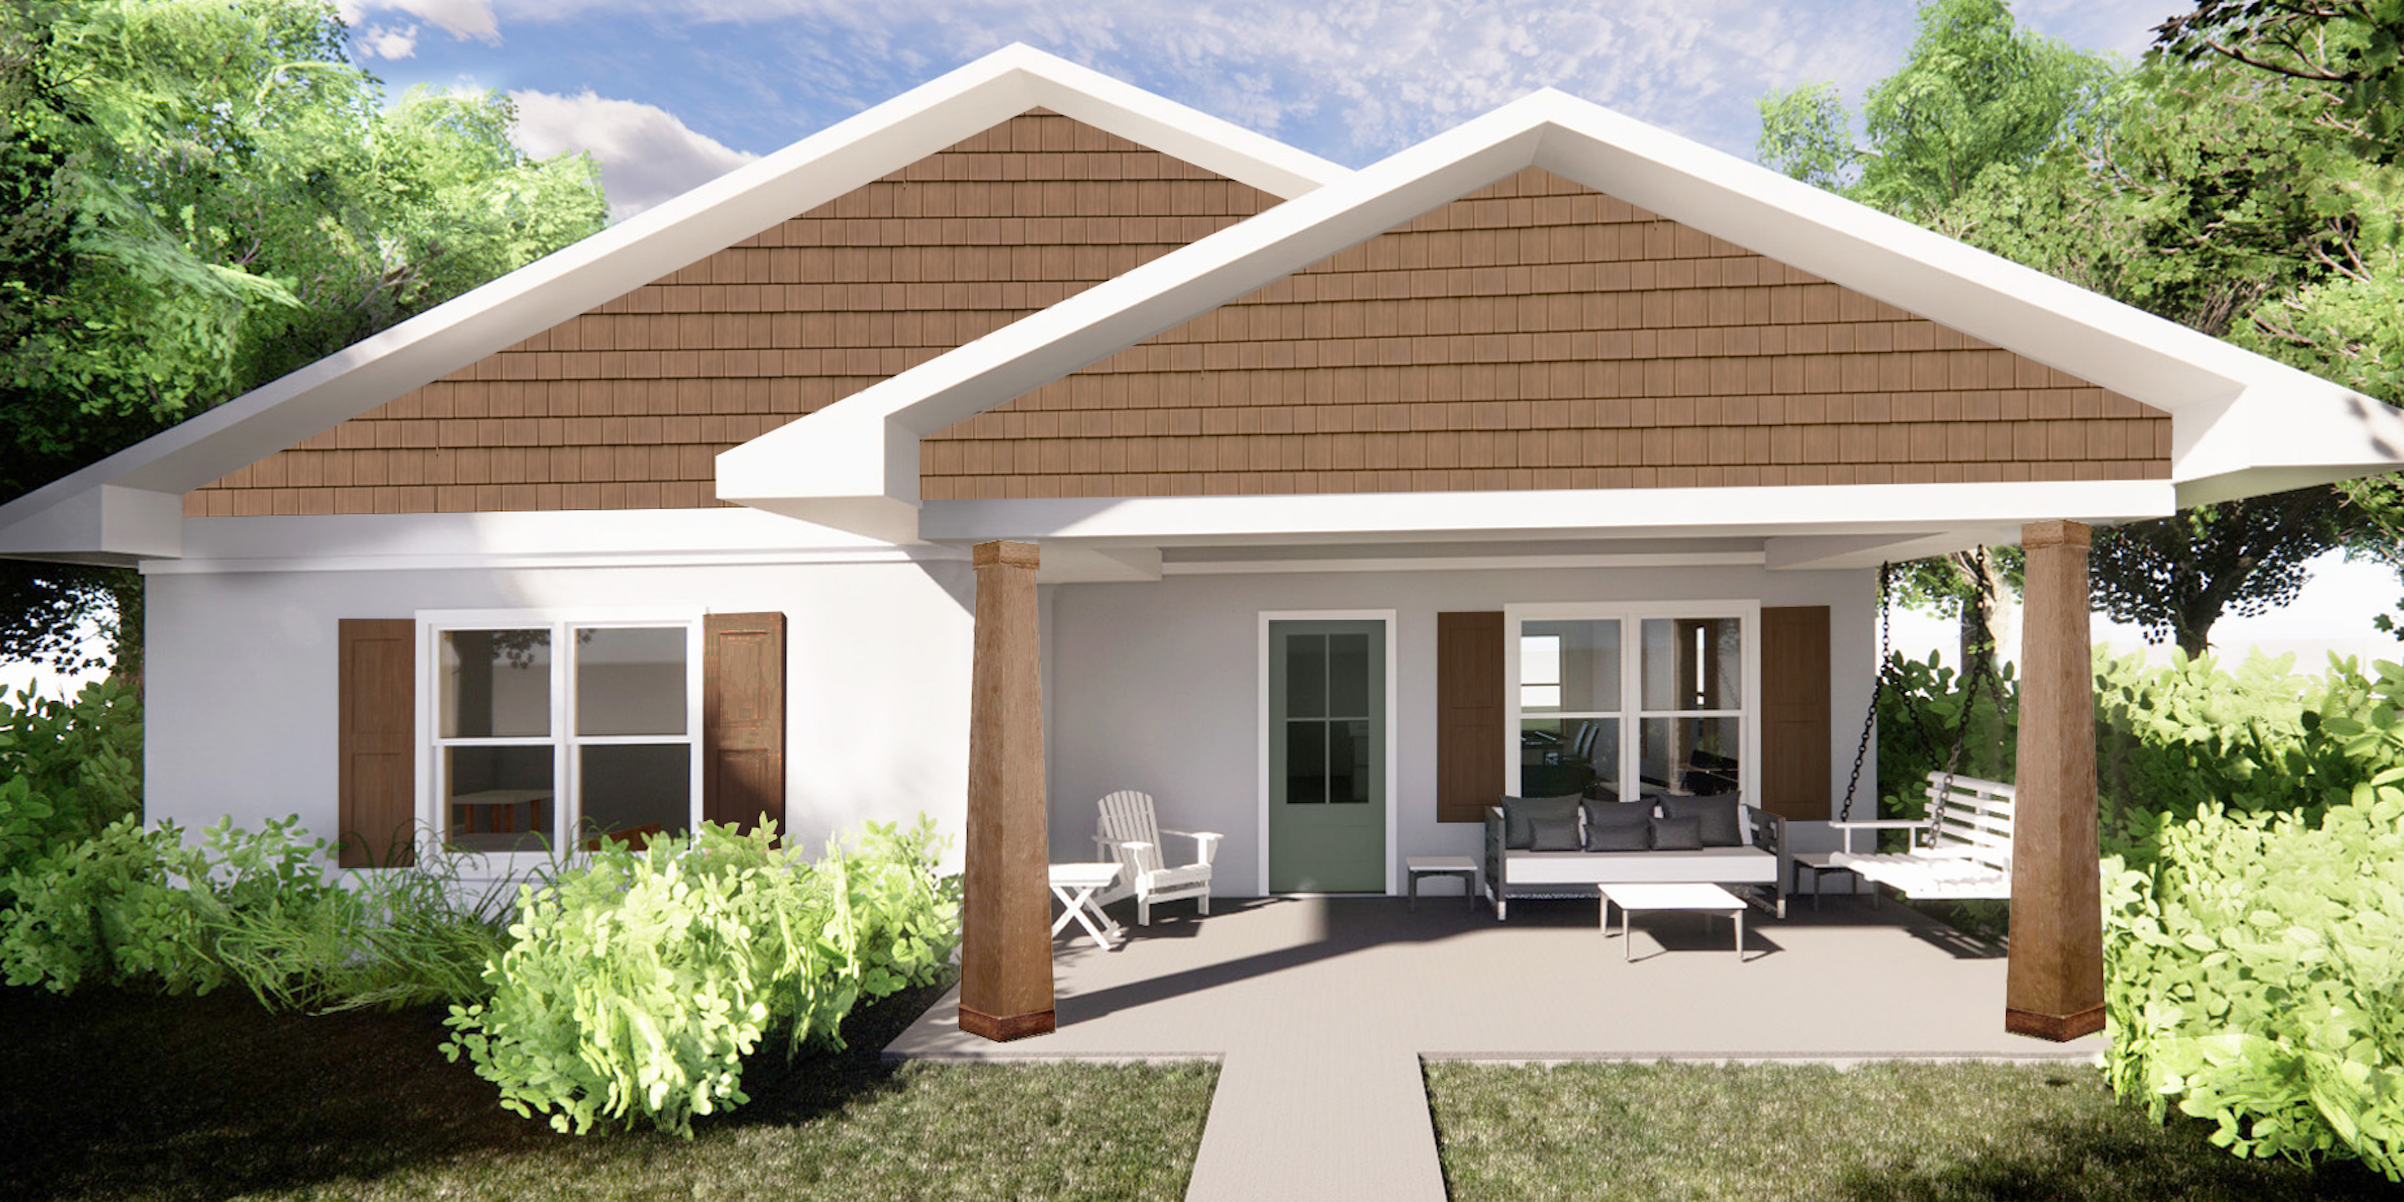 Habitat for Humanity is creating a 3D printed home for a family of 3 in Virginia –see inside